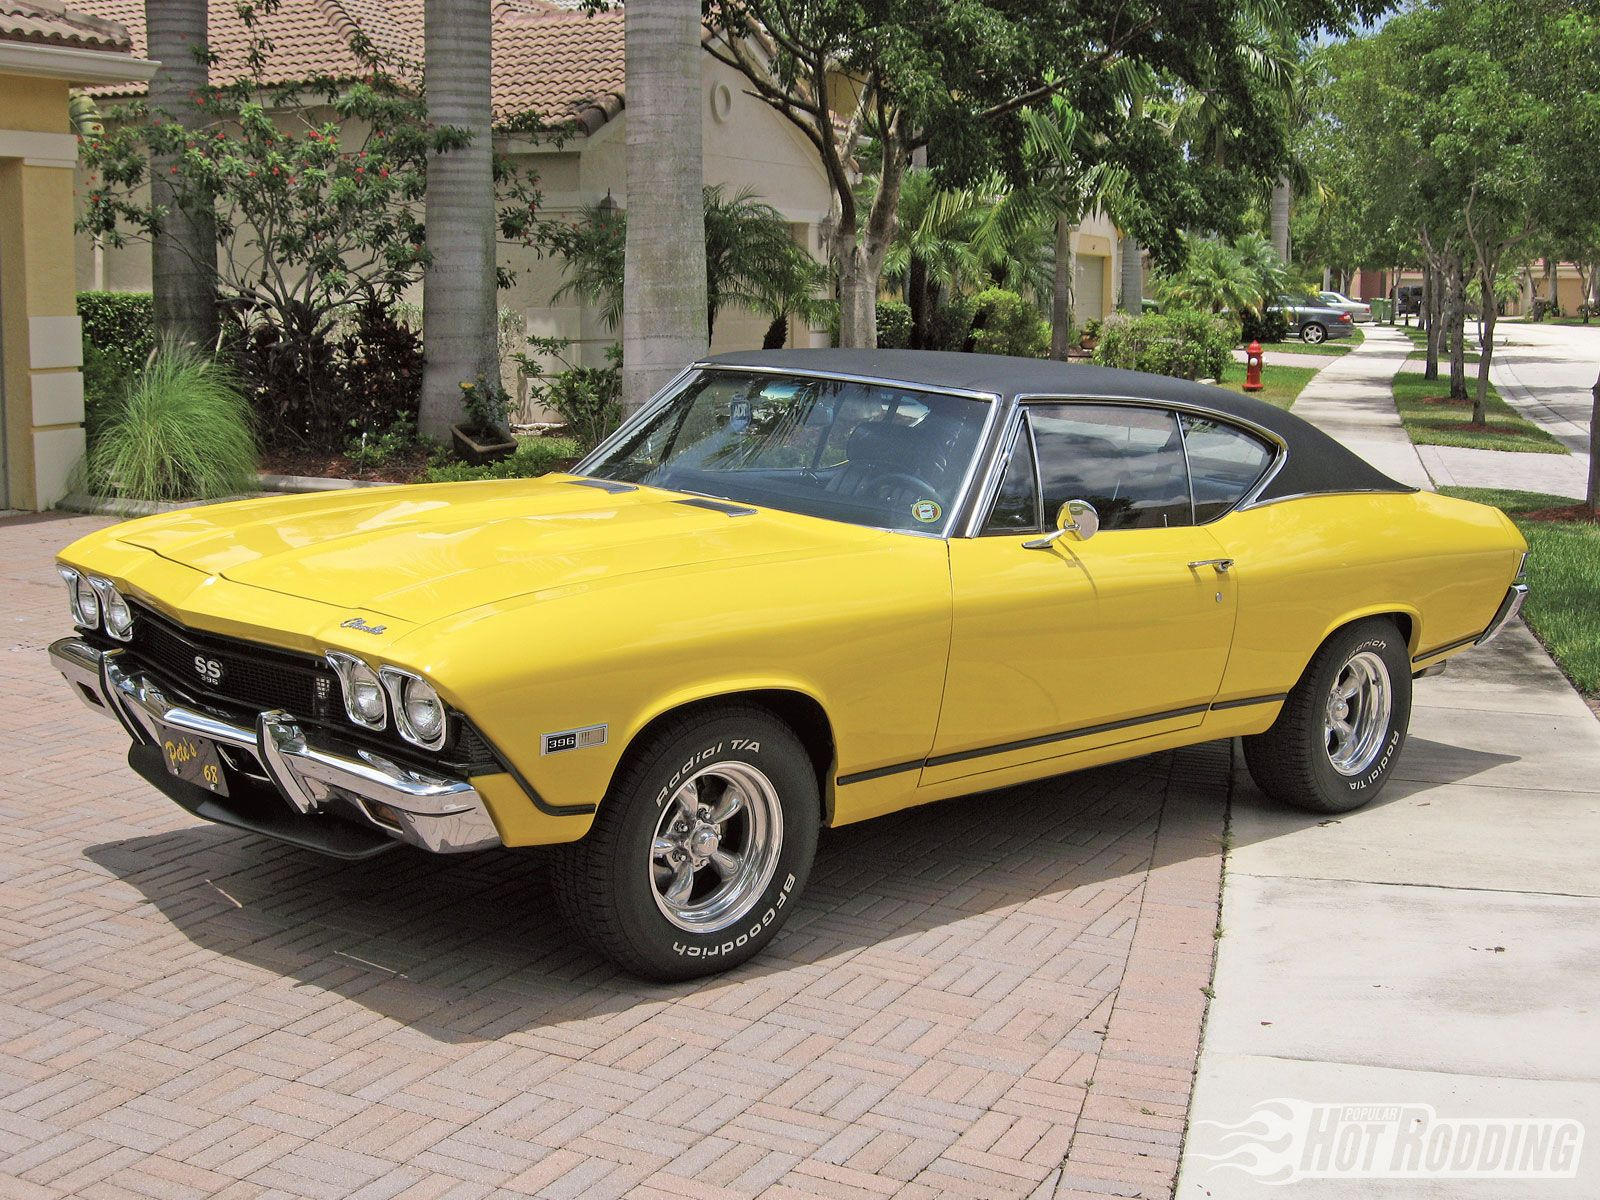 1968 Chevy Chevelle Yellow Ss Camaro Photo 1  american muscle